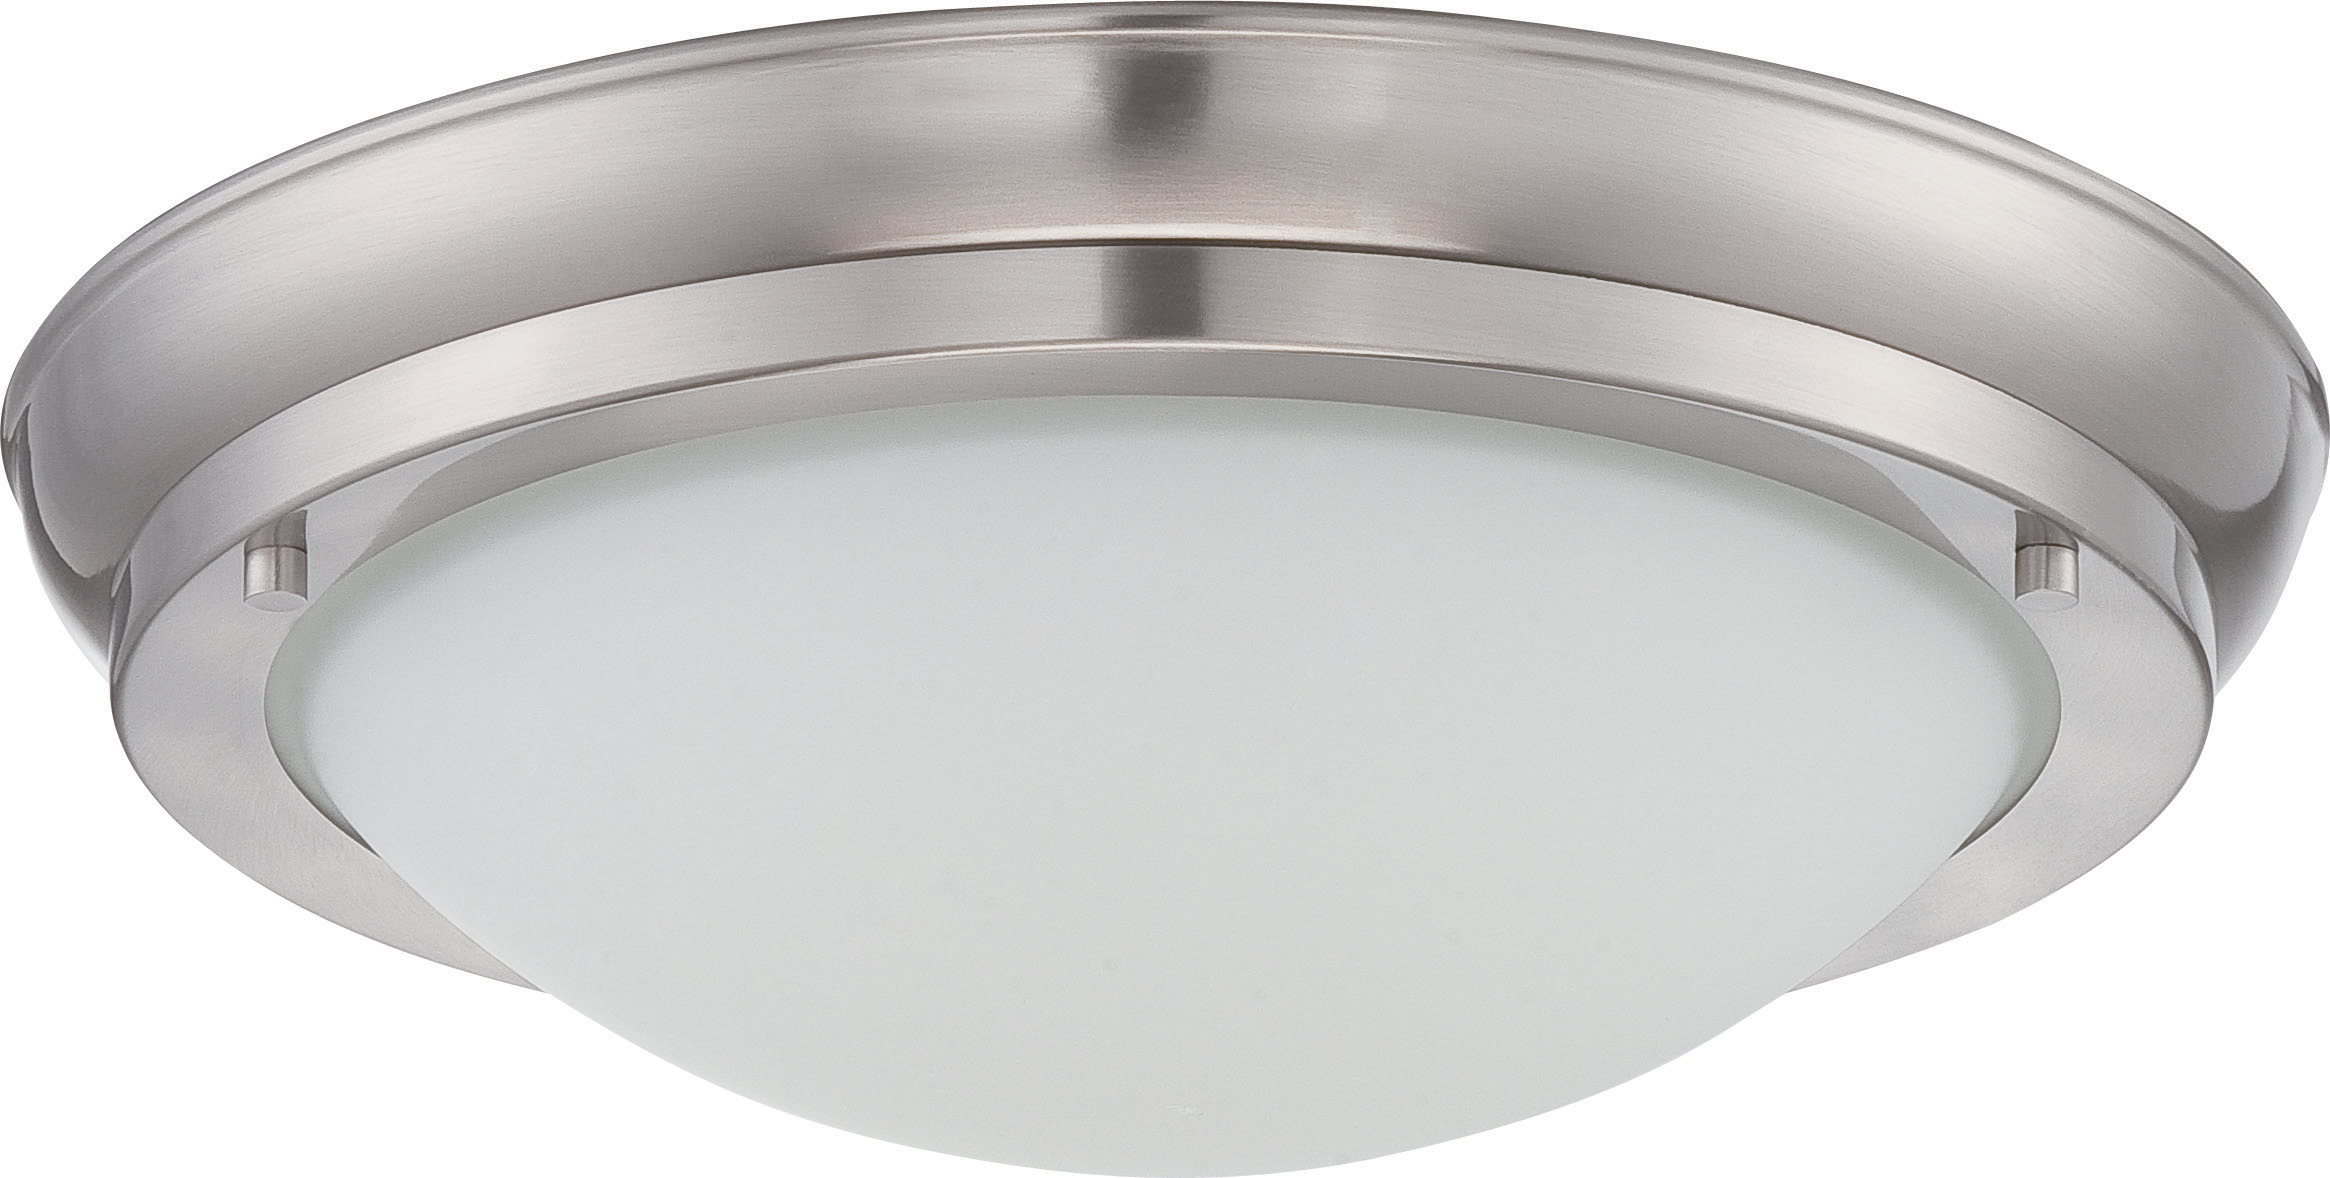 POKE LRGE LED FLUSH FIXT Brushed Nickel